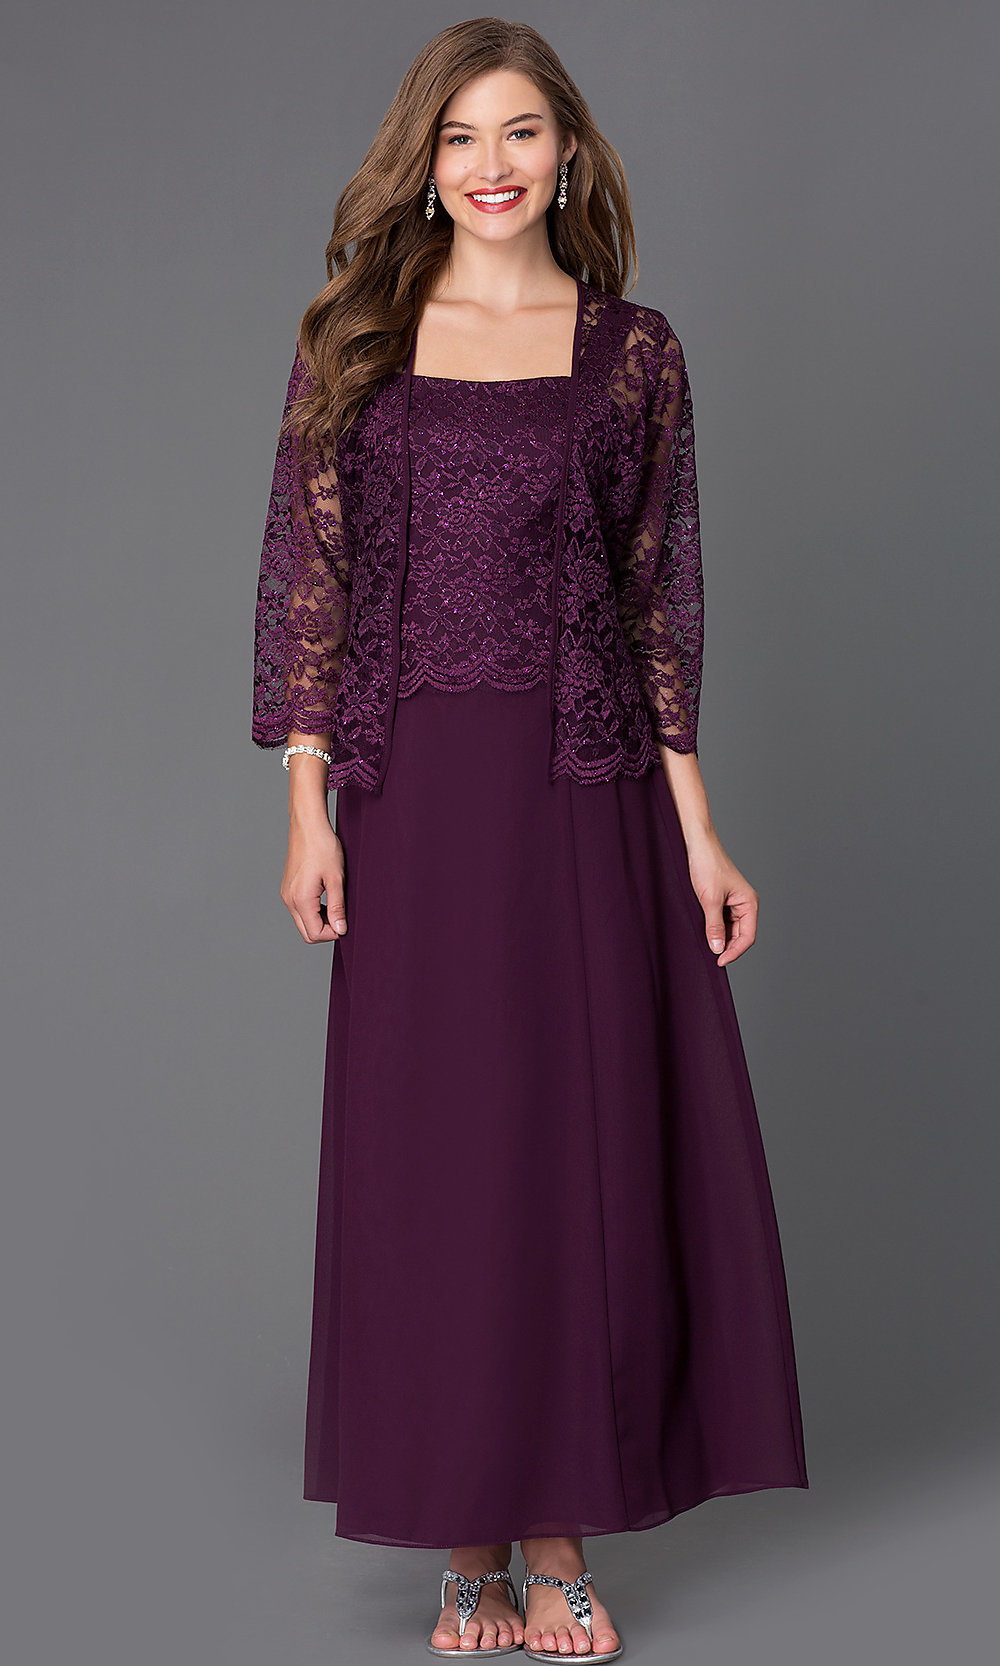 MOB Long Sleeveless Dress with Lace Jacket - PromGirl